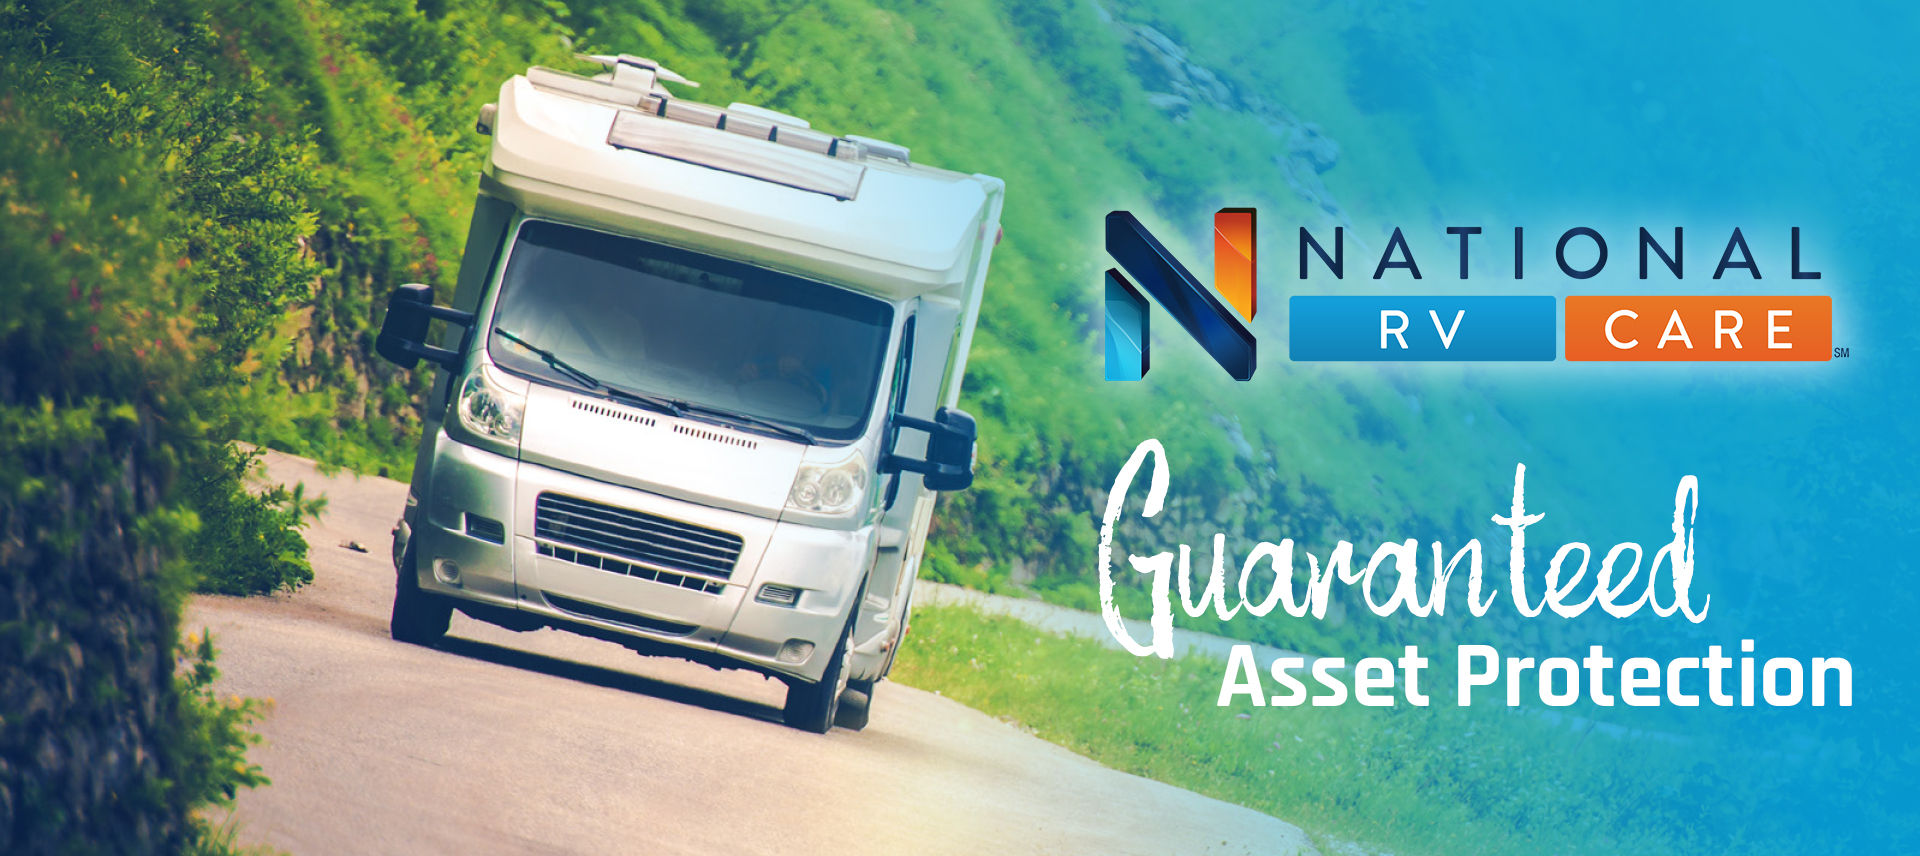 National RV Care | Guaranteed Asset Protection | Travelcamp